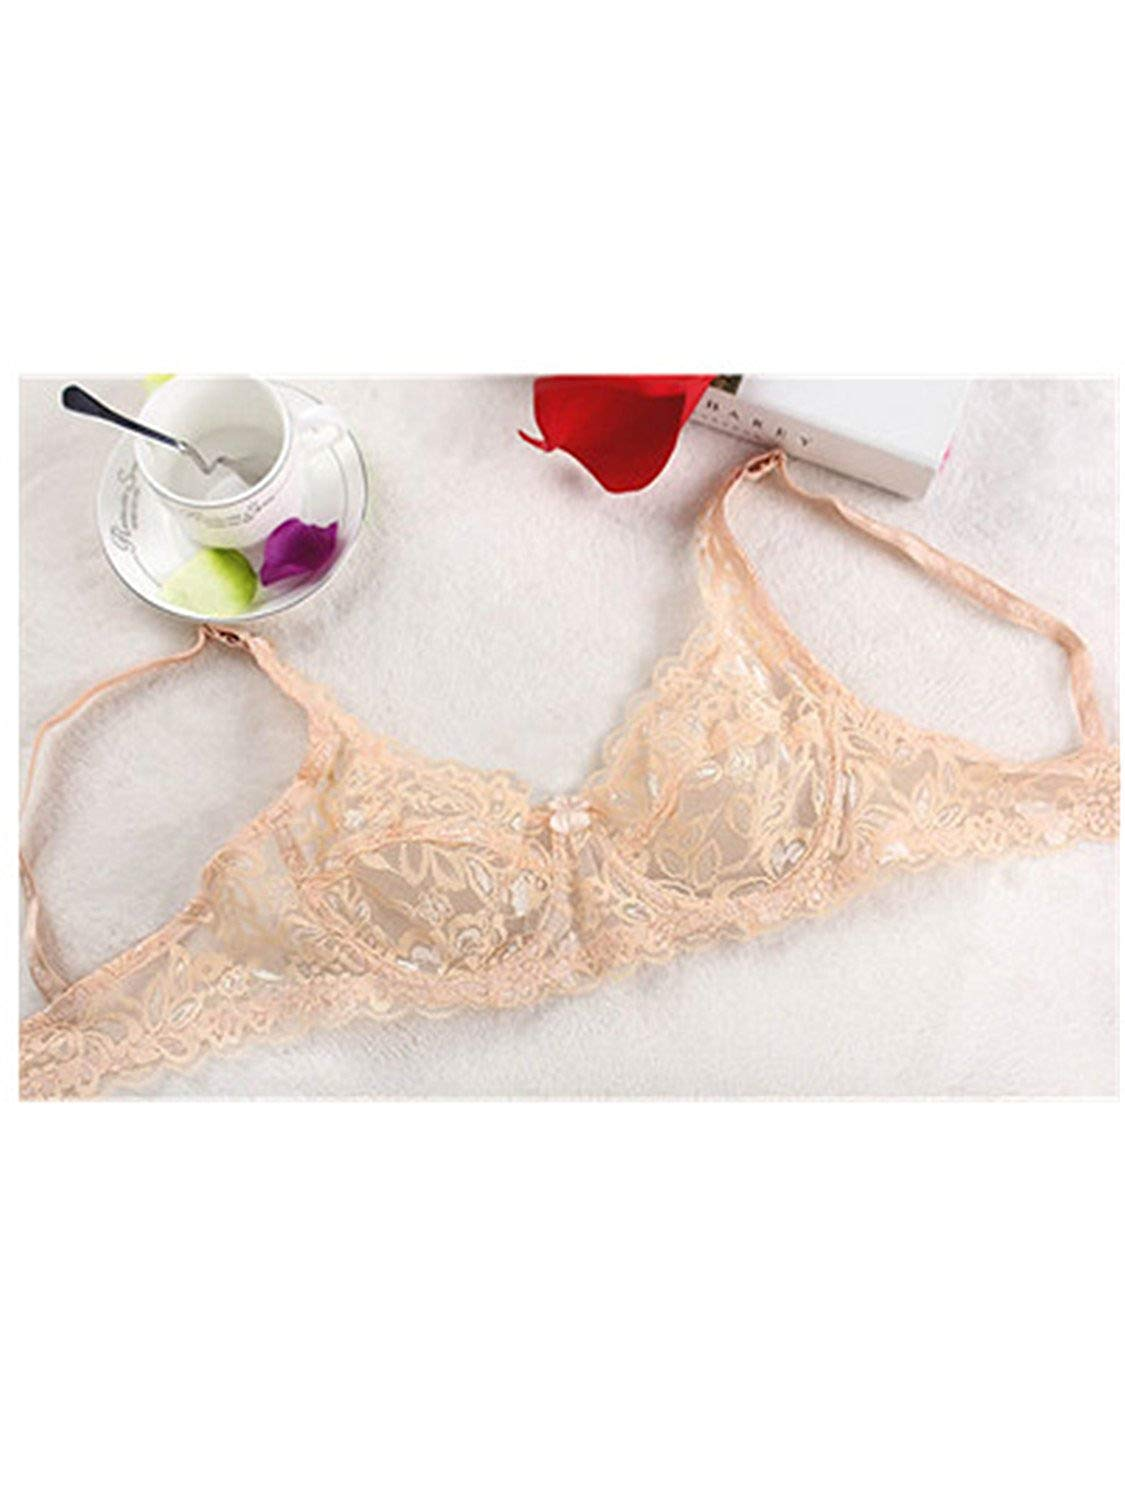 457bb9cdfcb Get Quotations · Nicholas Wit Women s Lace Underwire Push up Bra Sexy Underwear  Bras for Women Bralette Lingerie Intimates